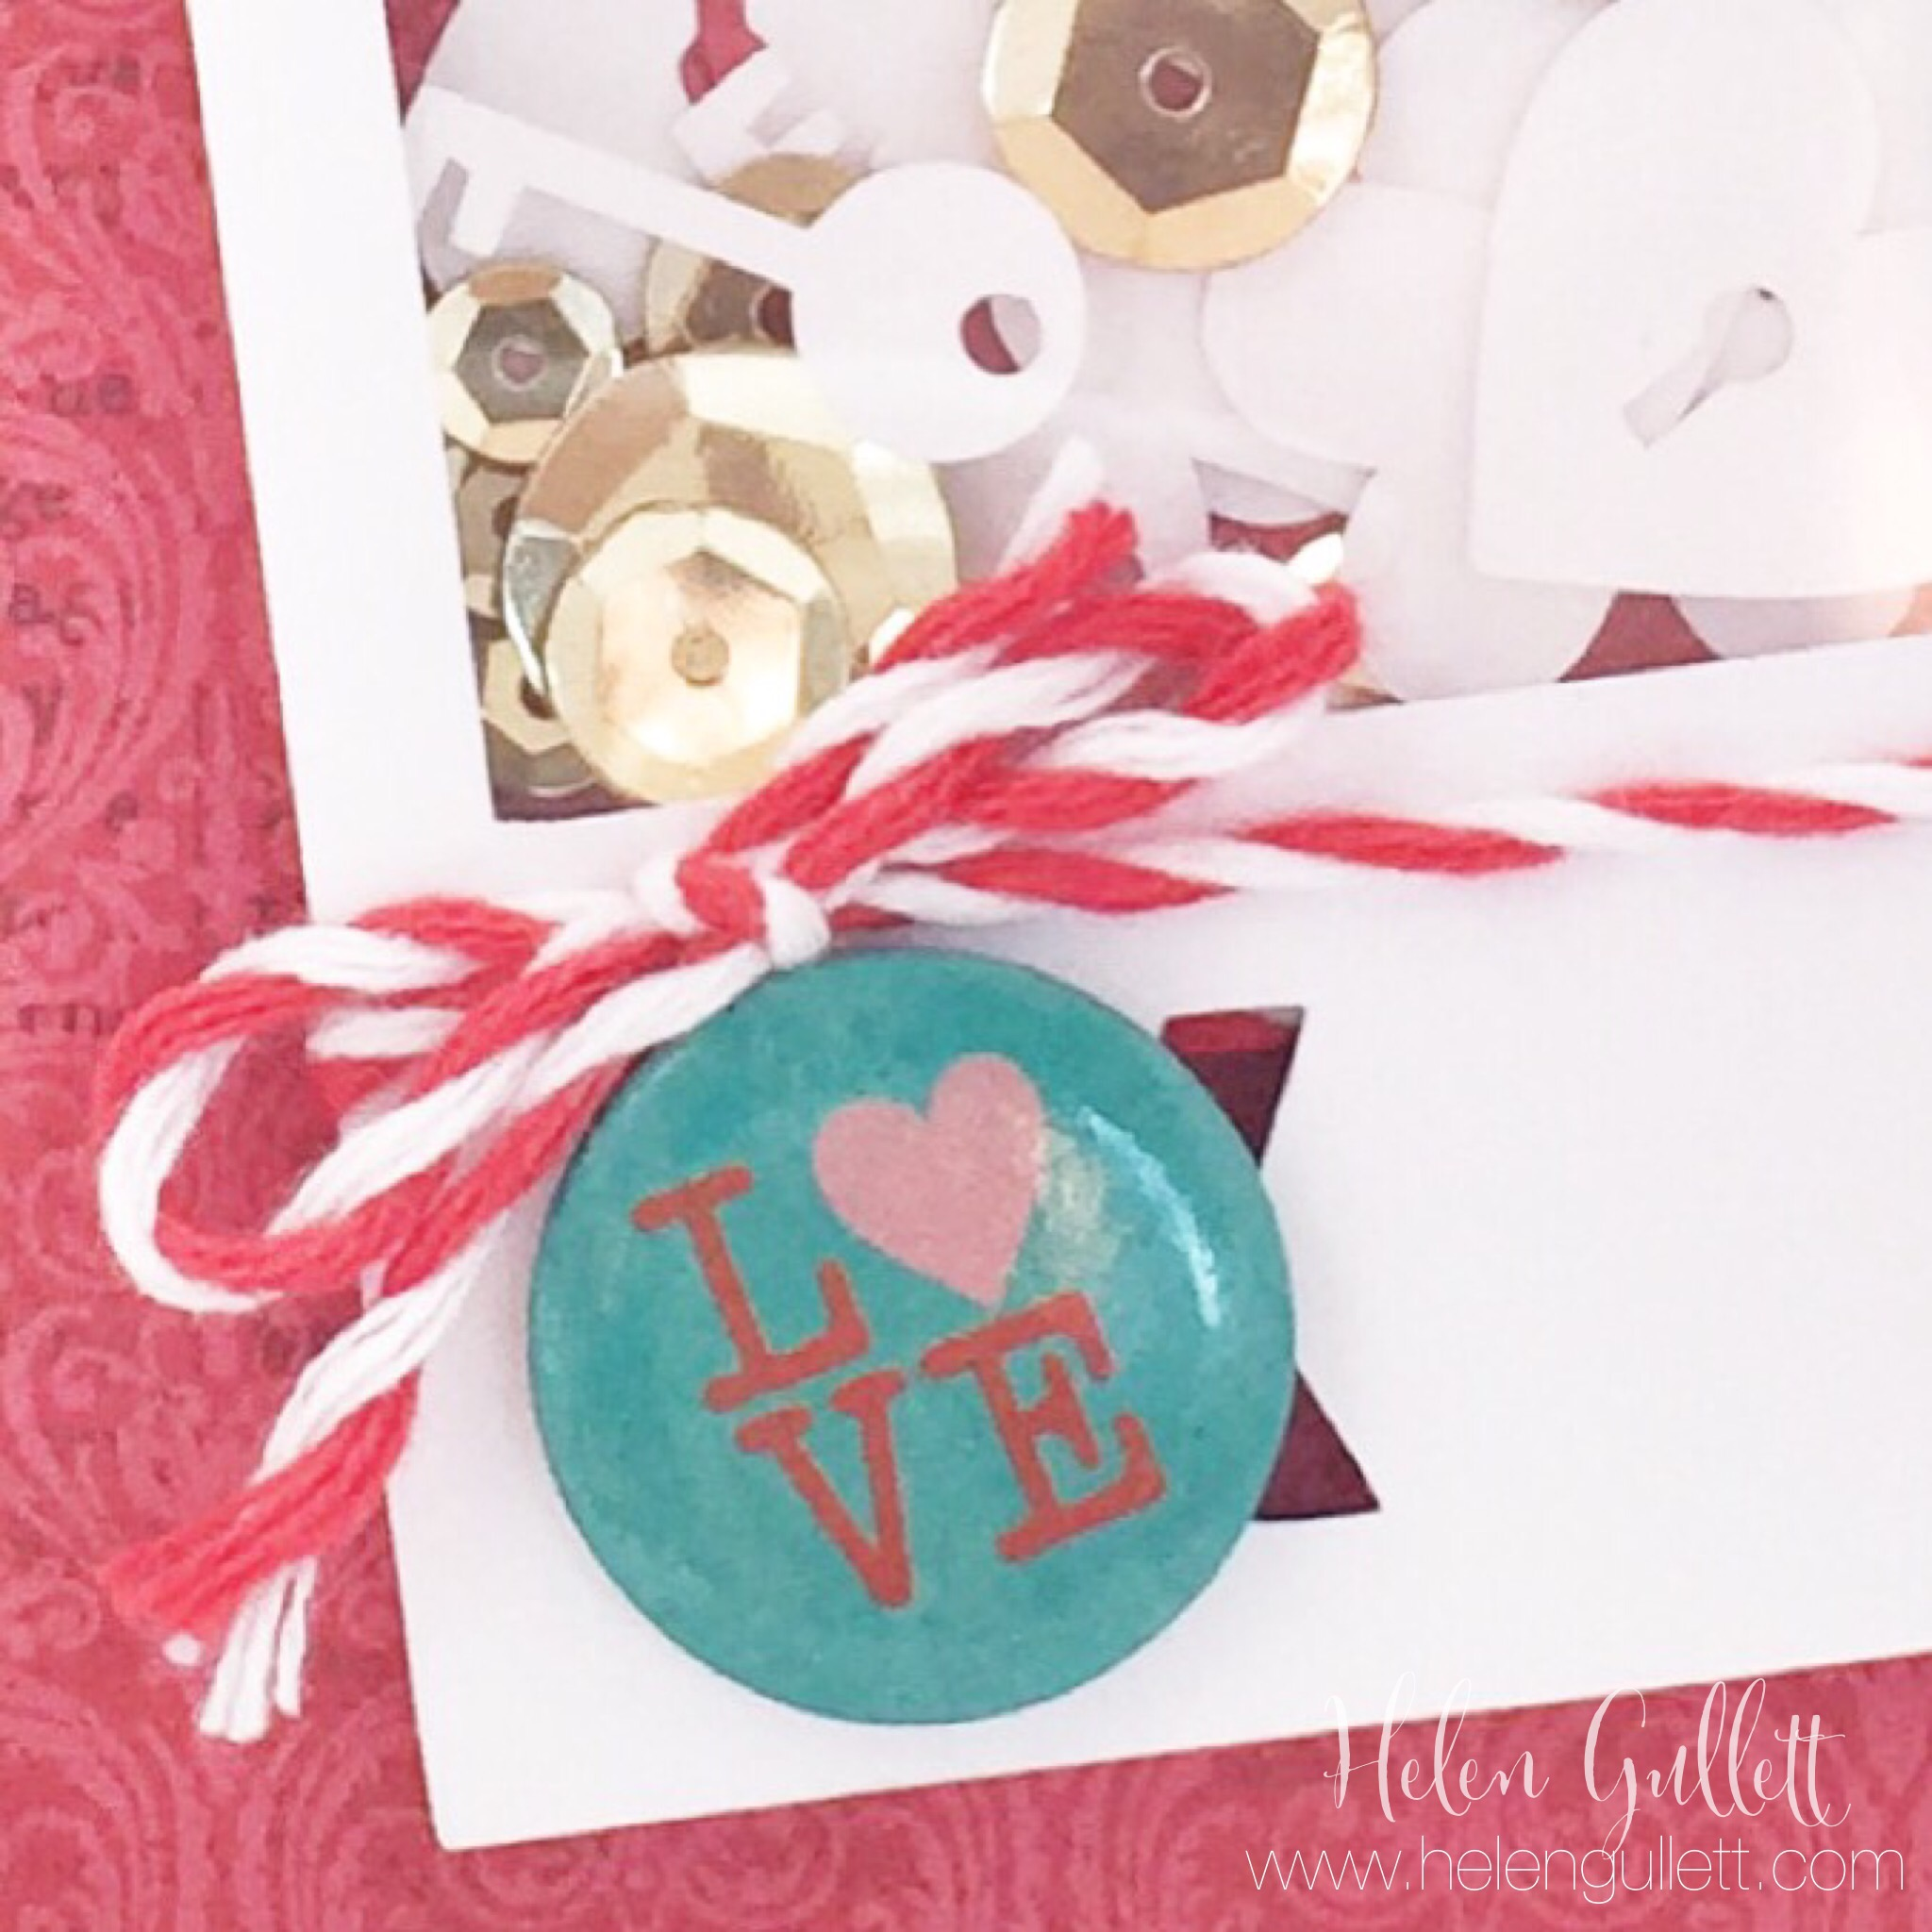 Key To My Heart Shaker Card by Helen Gullett | www.helengullett.com #livingmygivenlife #creatingjoyfully #ctmh #jrlcreativechallenge #silhouetteamerica #silhouettecameo #thecutshoppe #loriwhitlock #sophiegallo #shakercard #stepcard #handmadecard #valentinecard #bakertwine #flairbutton #sequin #confetti